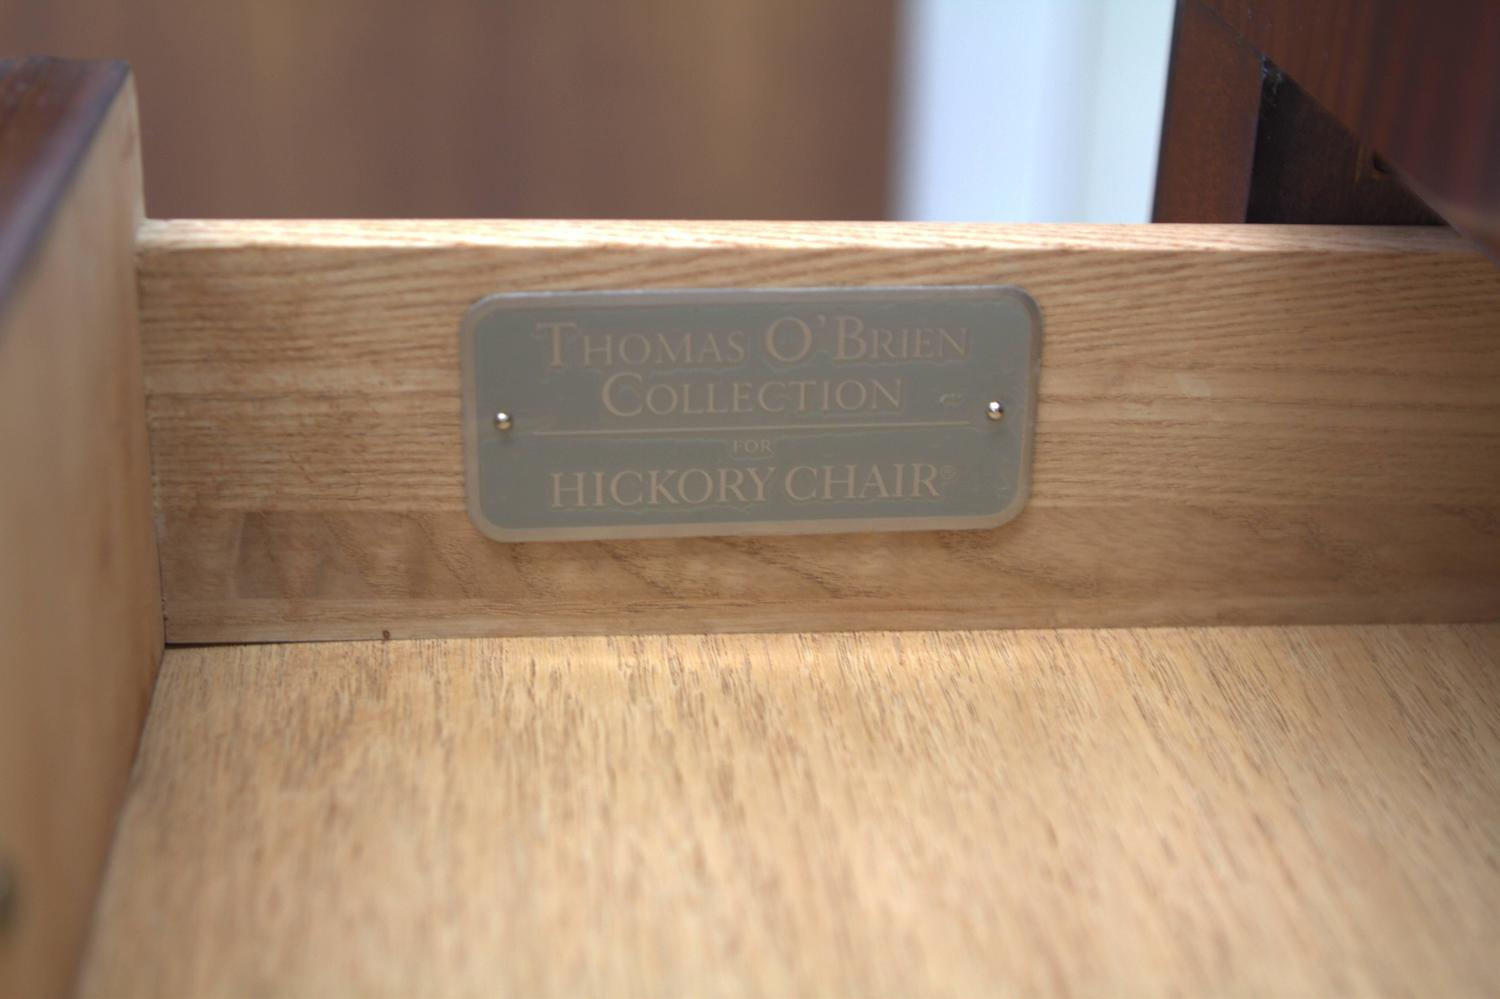 Keith Desk By Thomas O Brien For Hickory Chair At 1stdibs